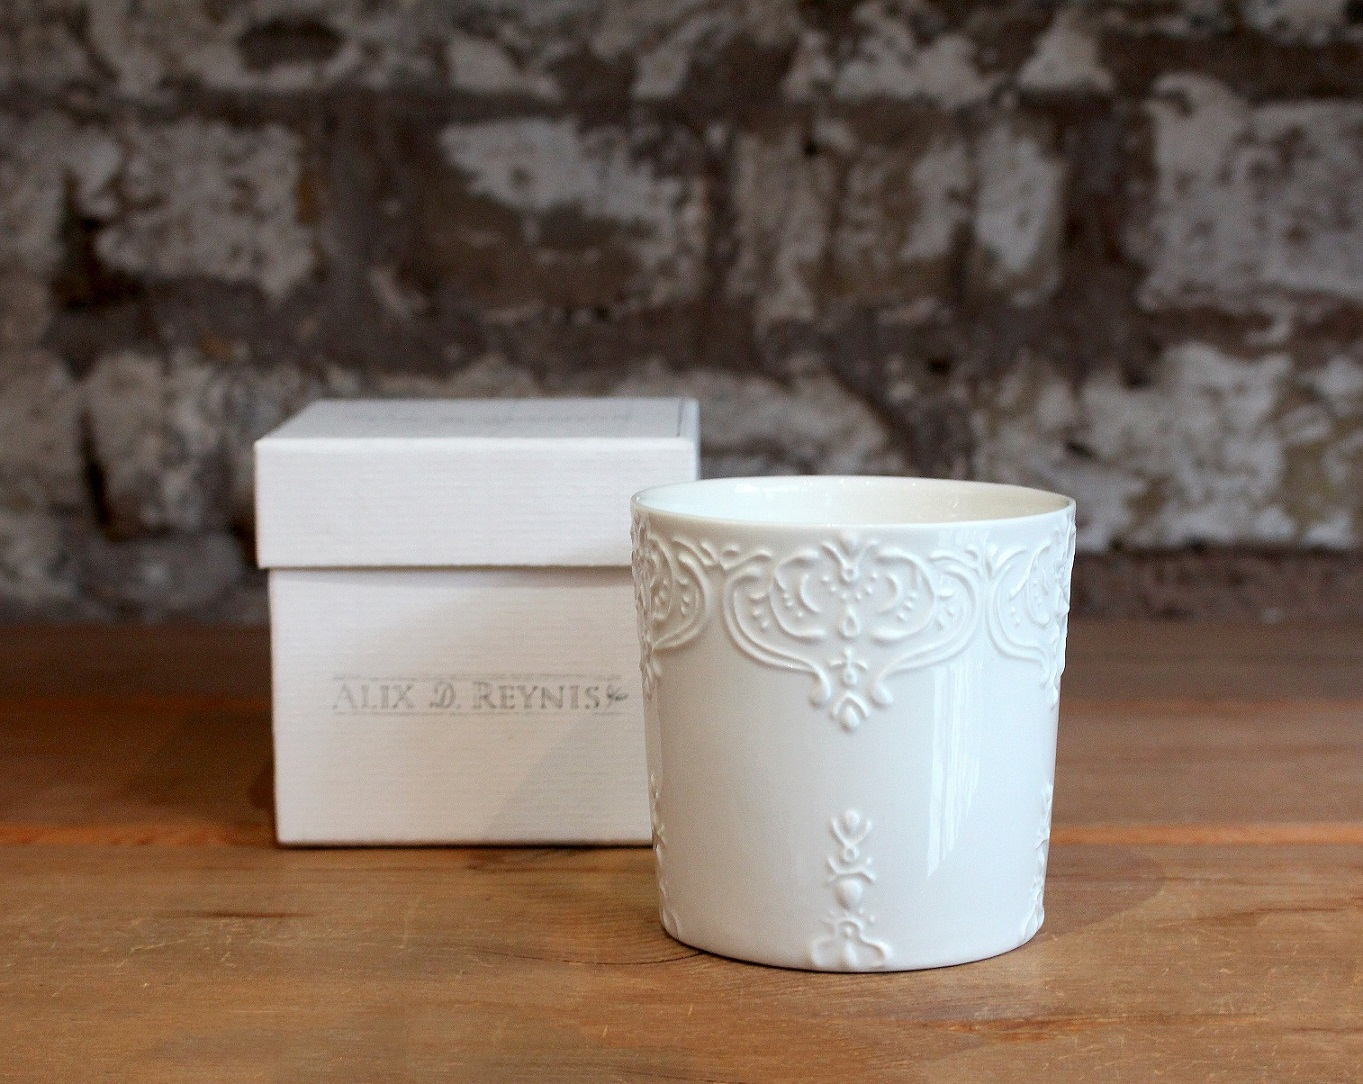 Alix D Reynis candle packaging